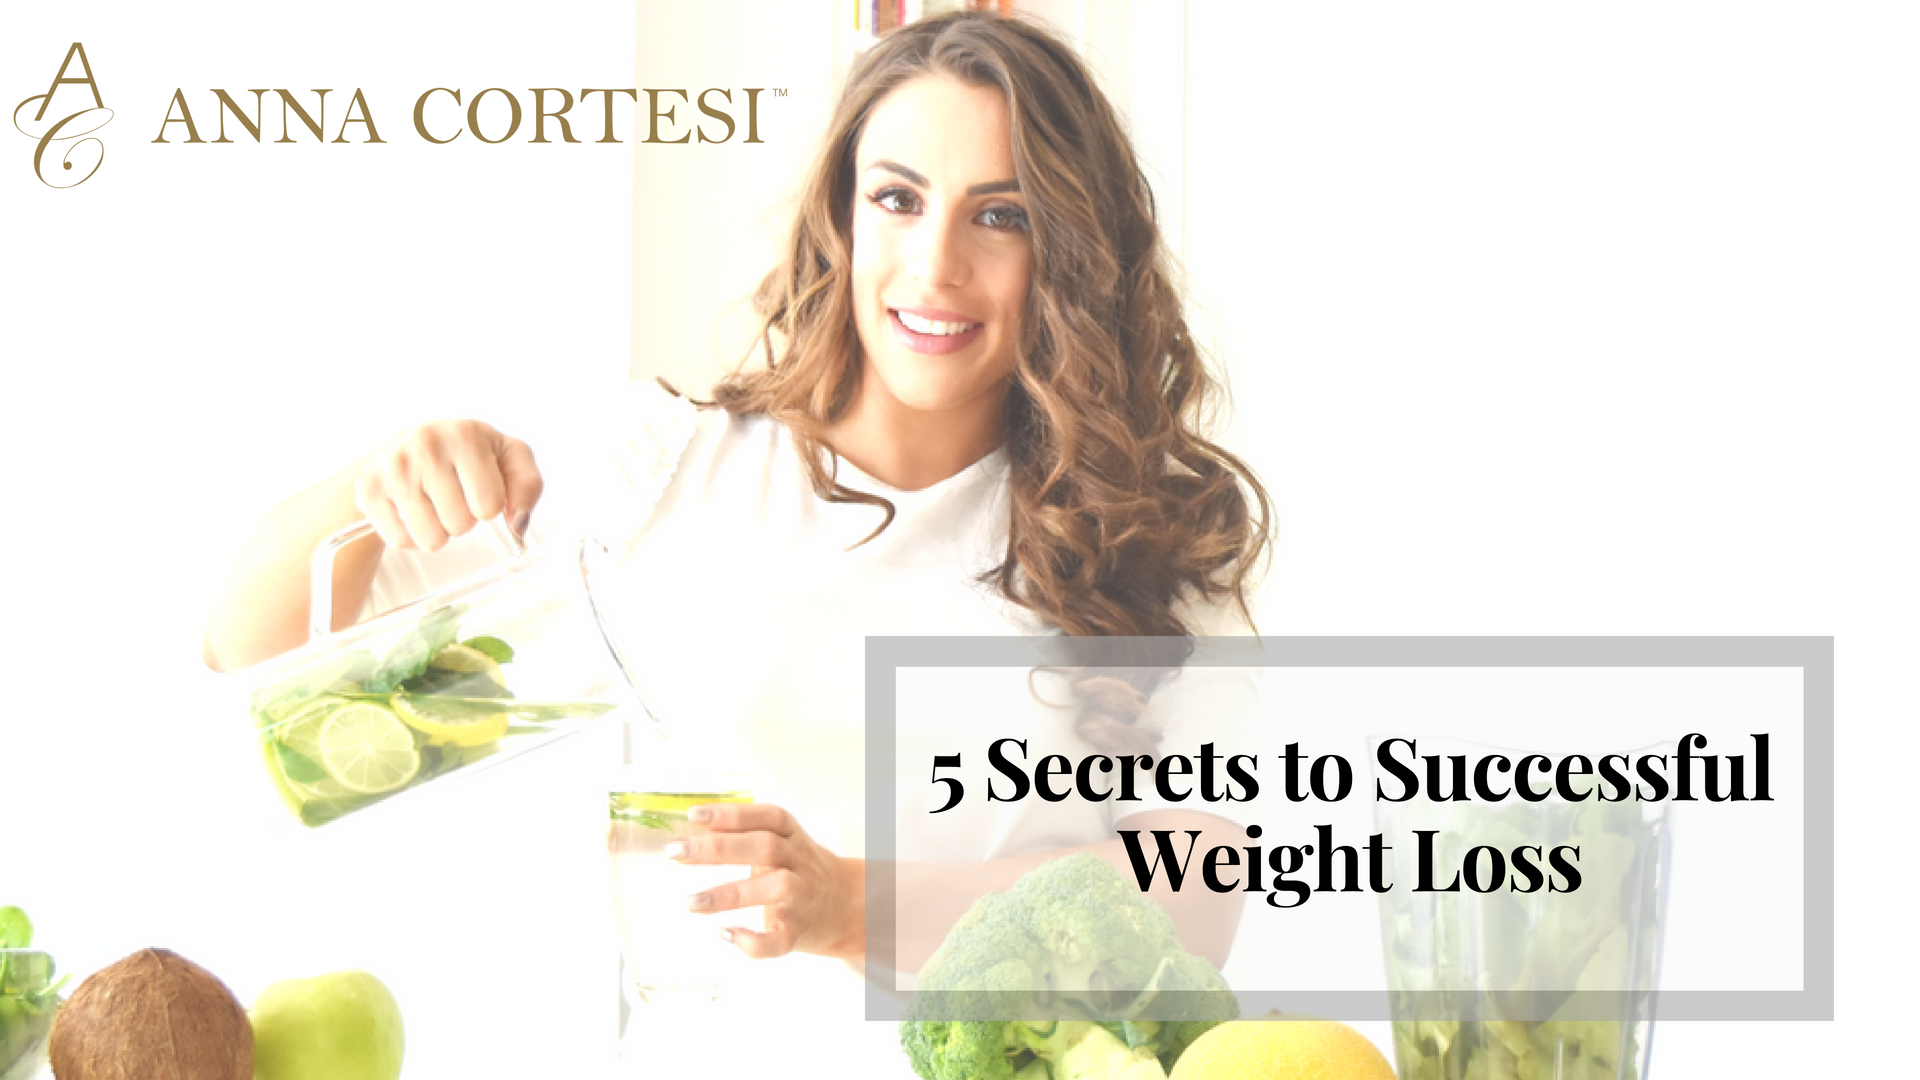 5 Secrets to Successful Weight Loss